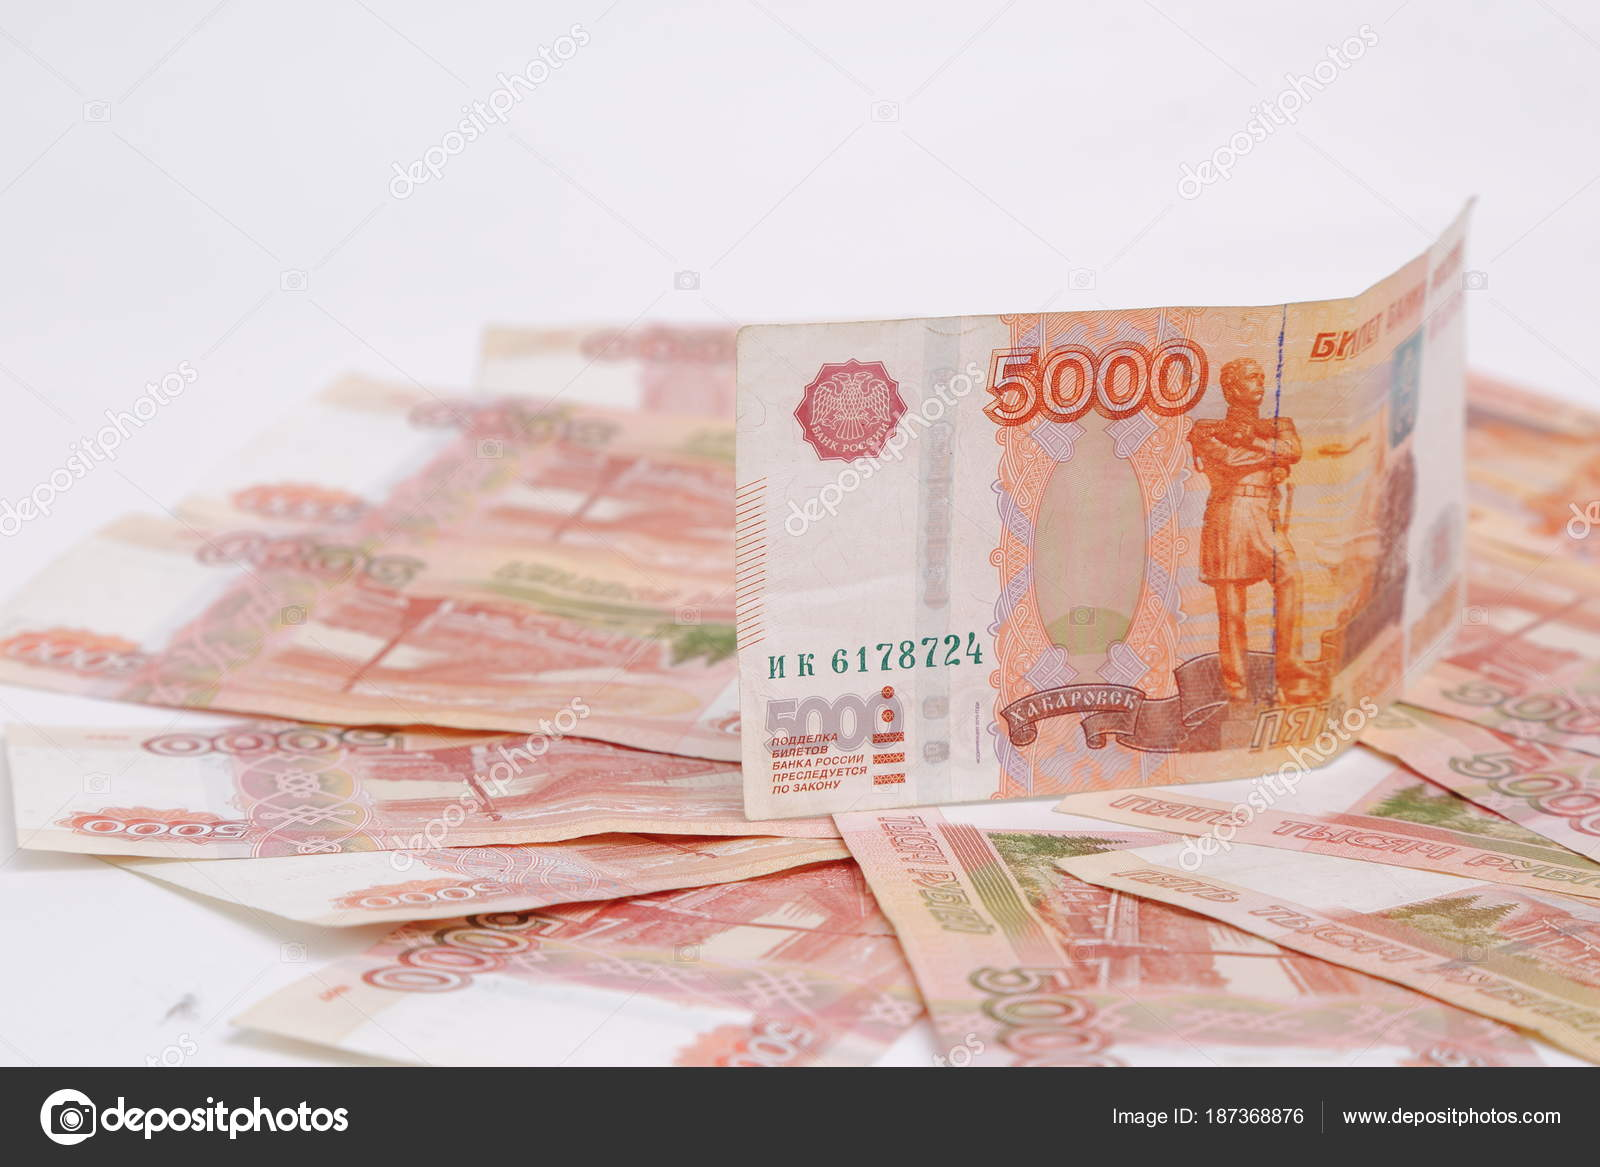 Studio Image 5000 Rubles Cash Money Russian Federation — Stock Photo